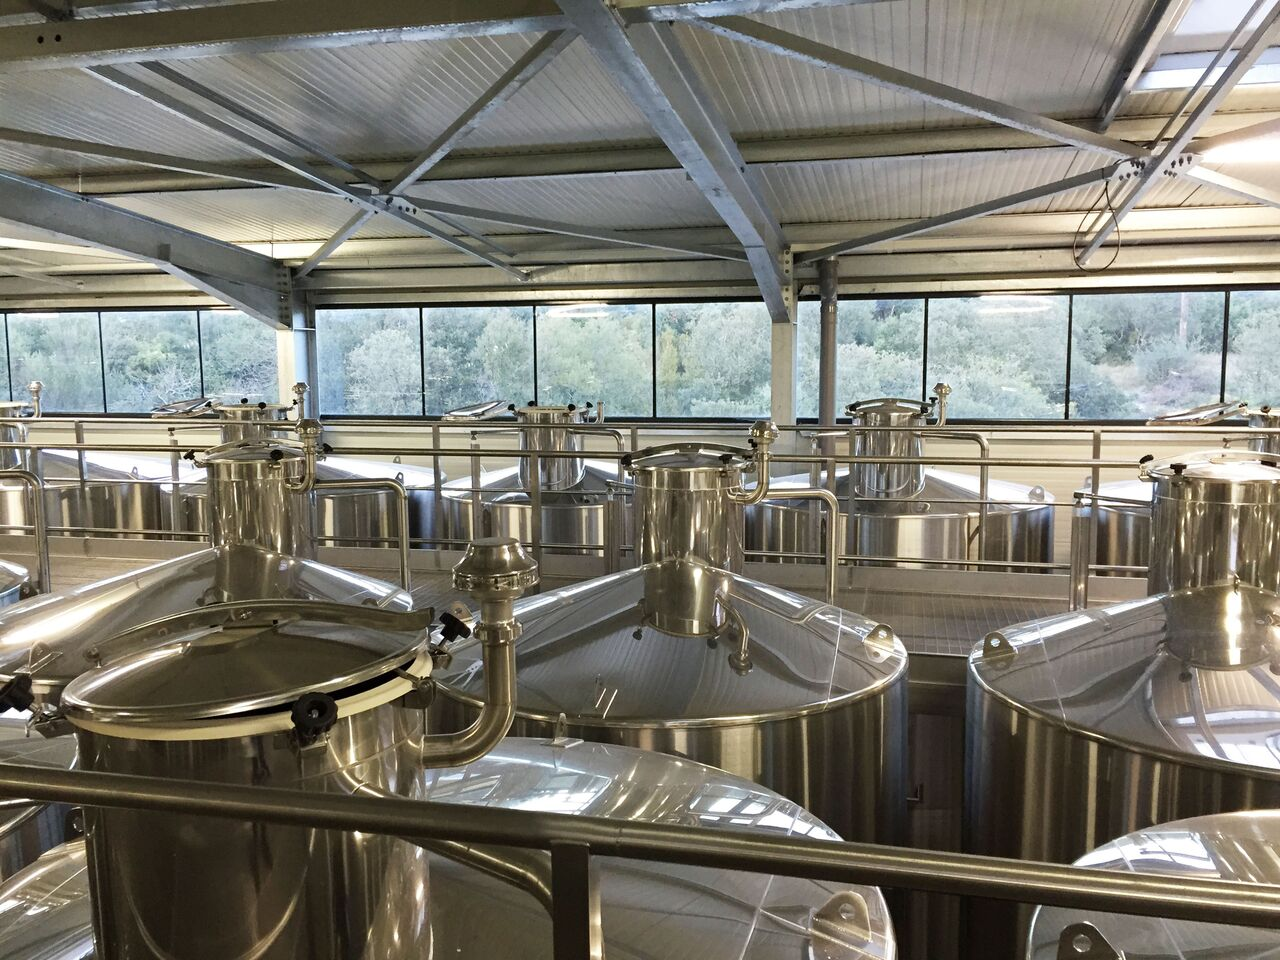 BADET C photo Winery Stainless Steel Tanks 1_preview.jpg